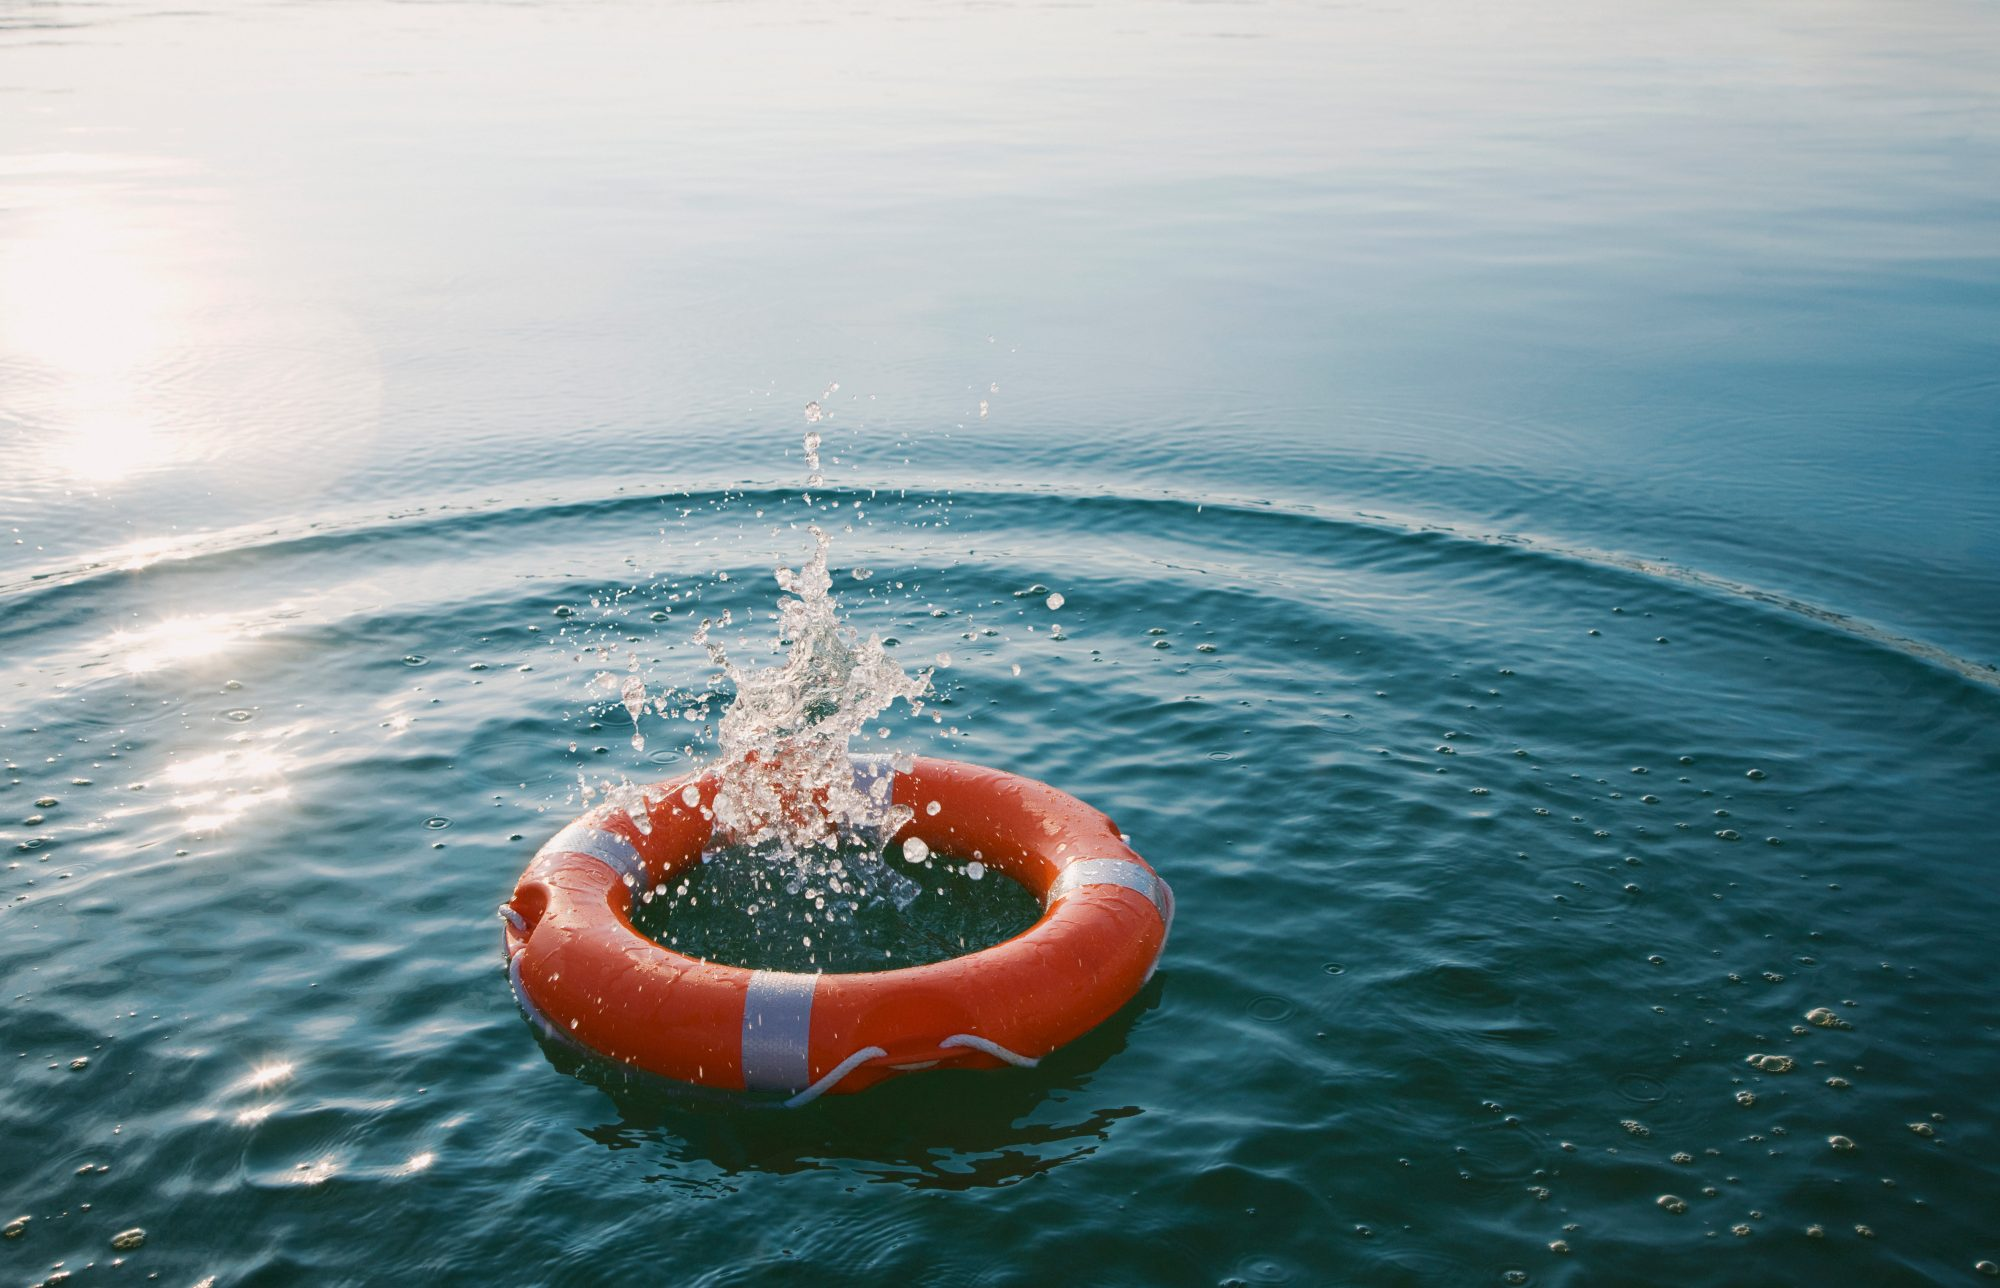 Lifesaver floating in the water